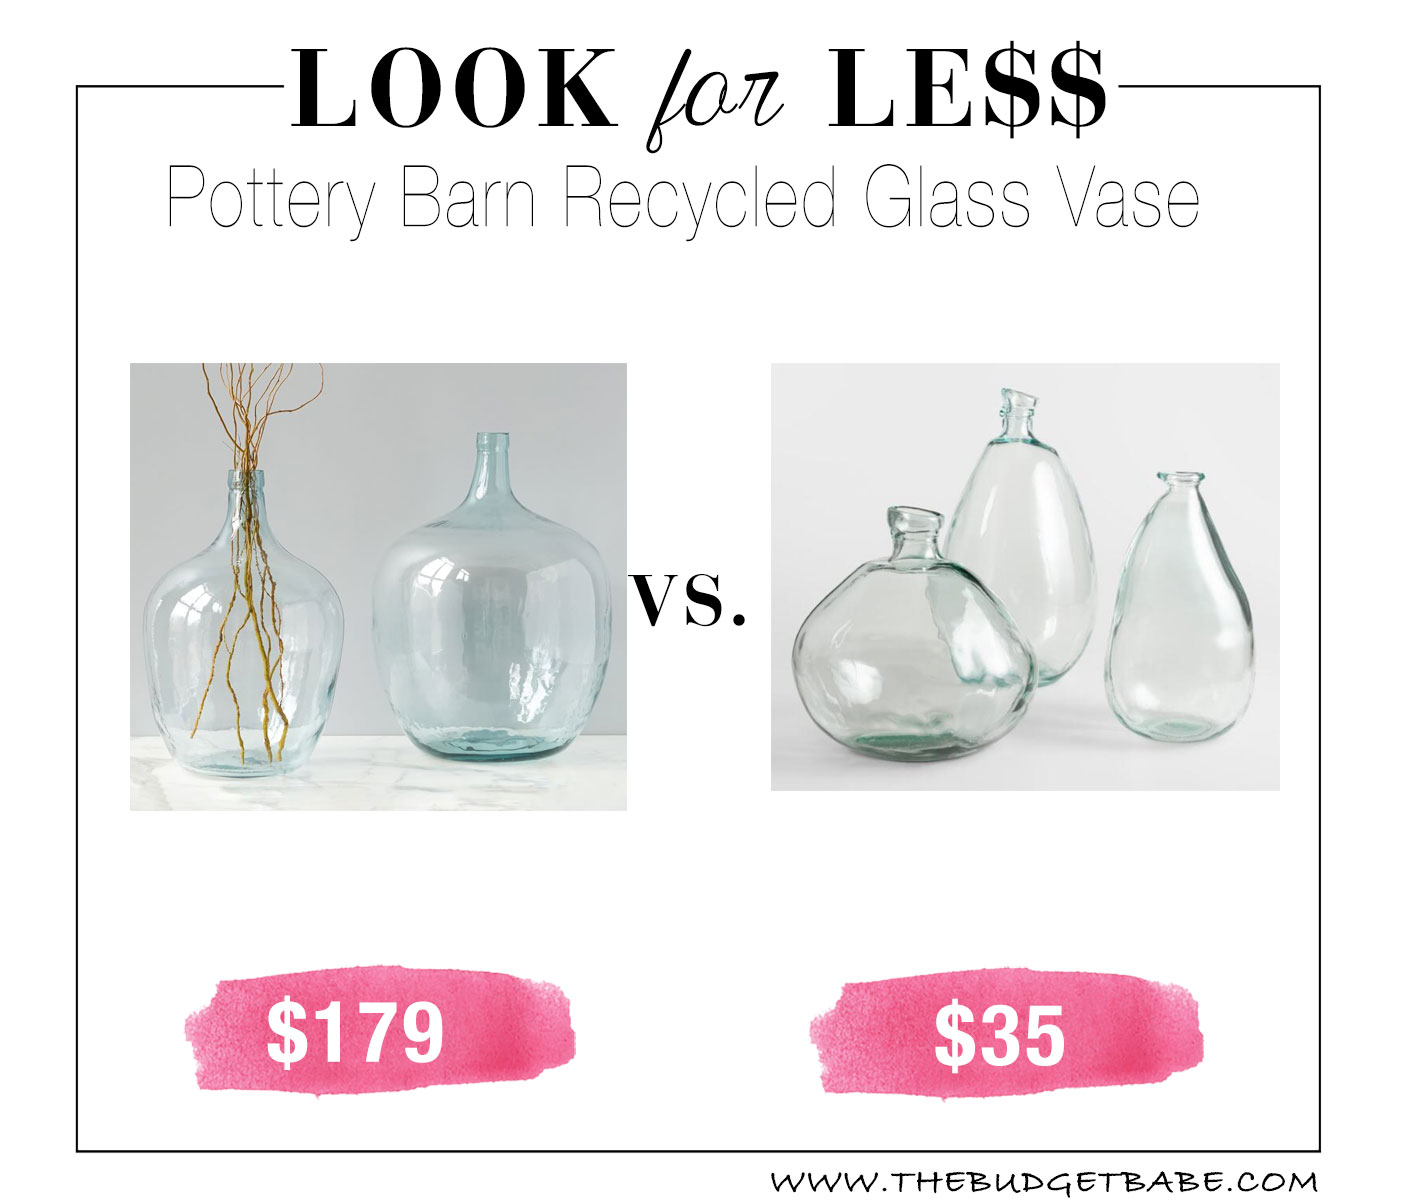 Recycled glass vase look for less